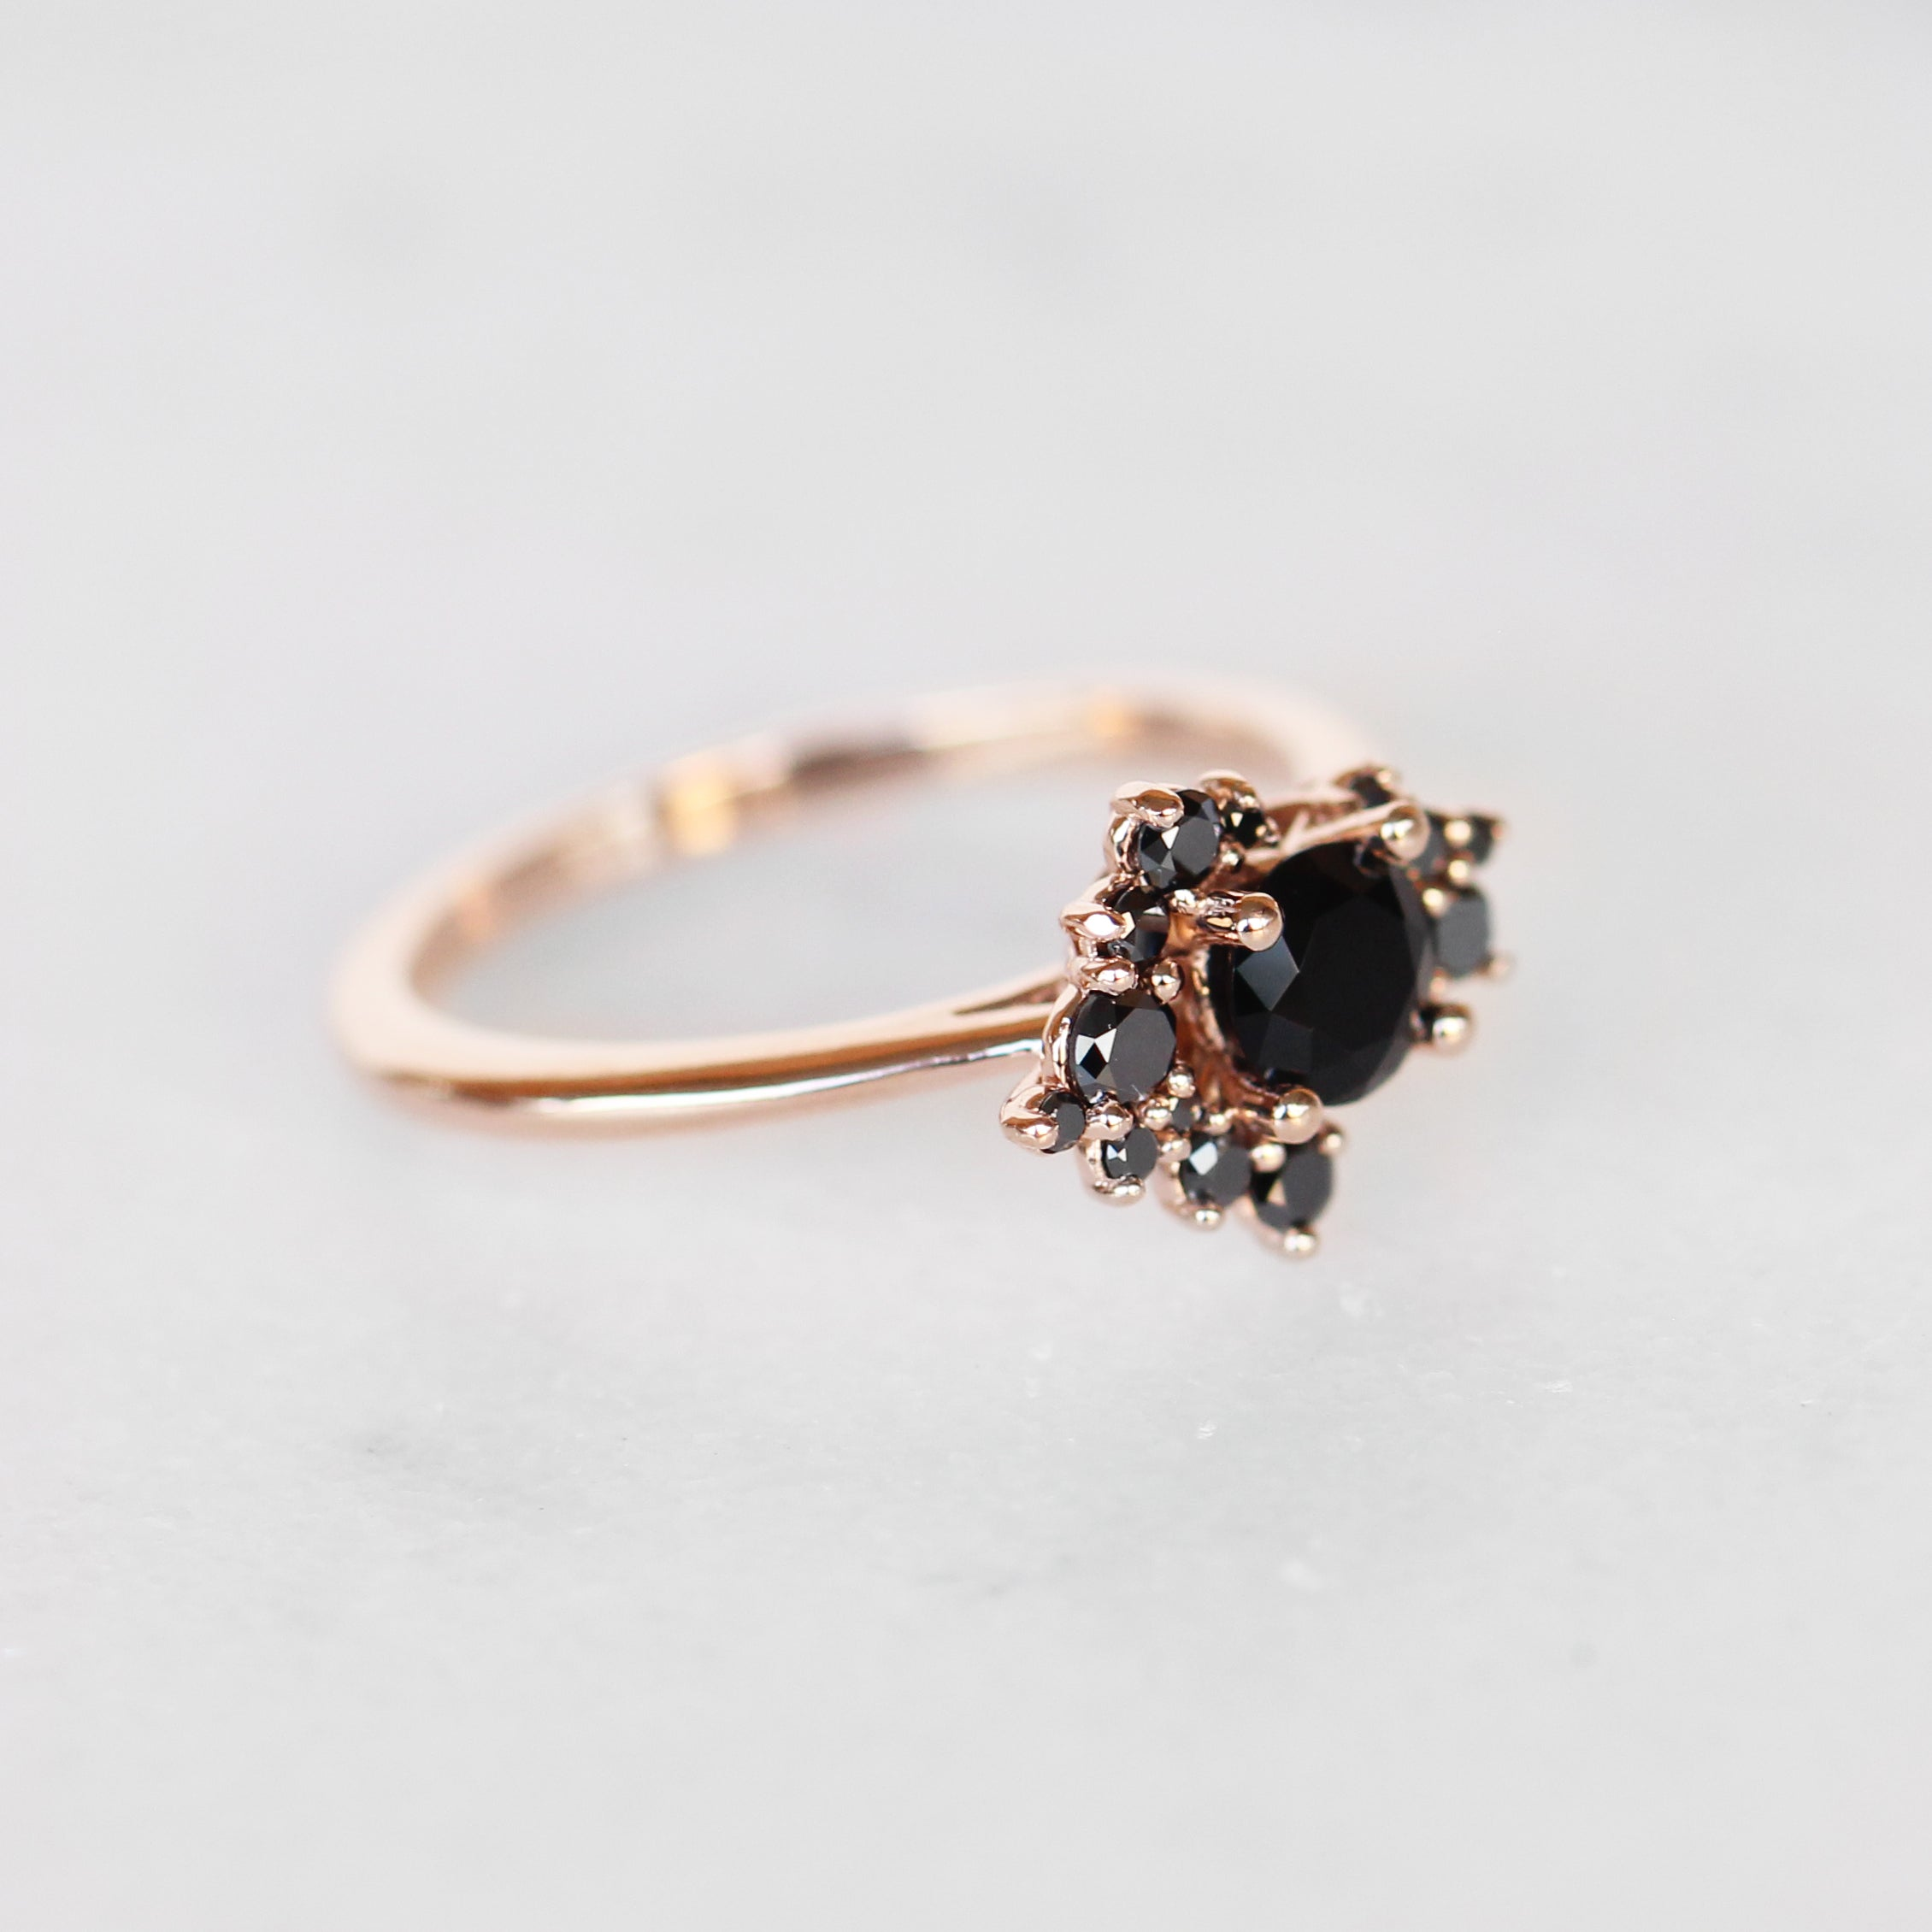 Orion Ring with All Black Diamonds - Cluster ring - Celestial Diamonds ® by Midwinter Co.